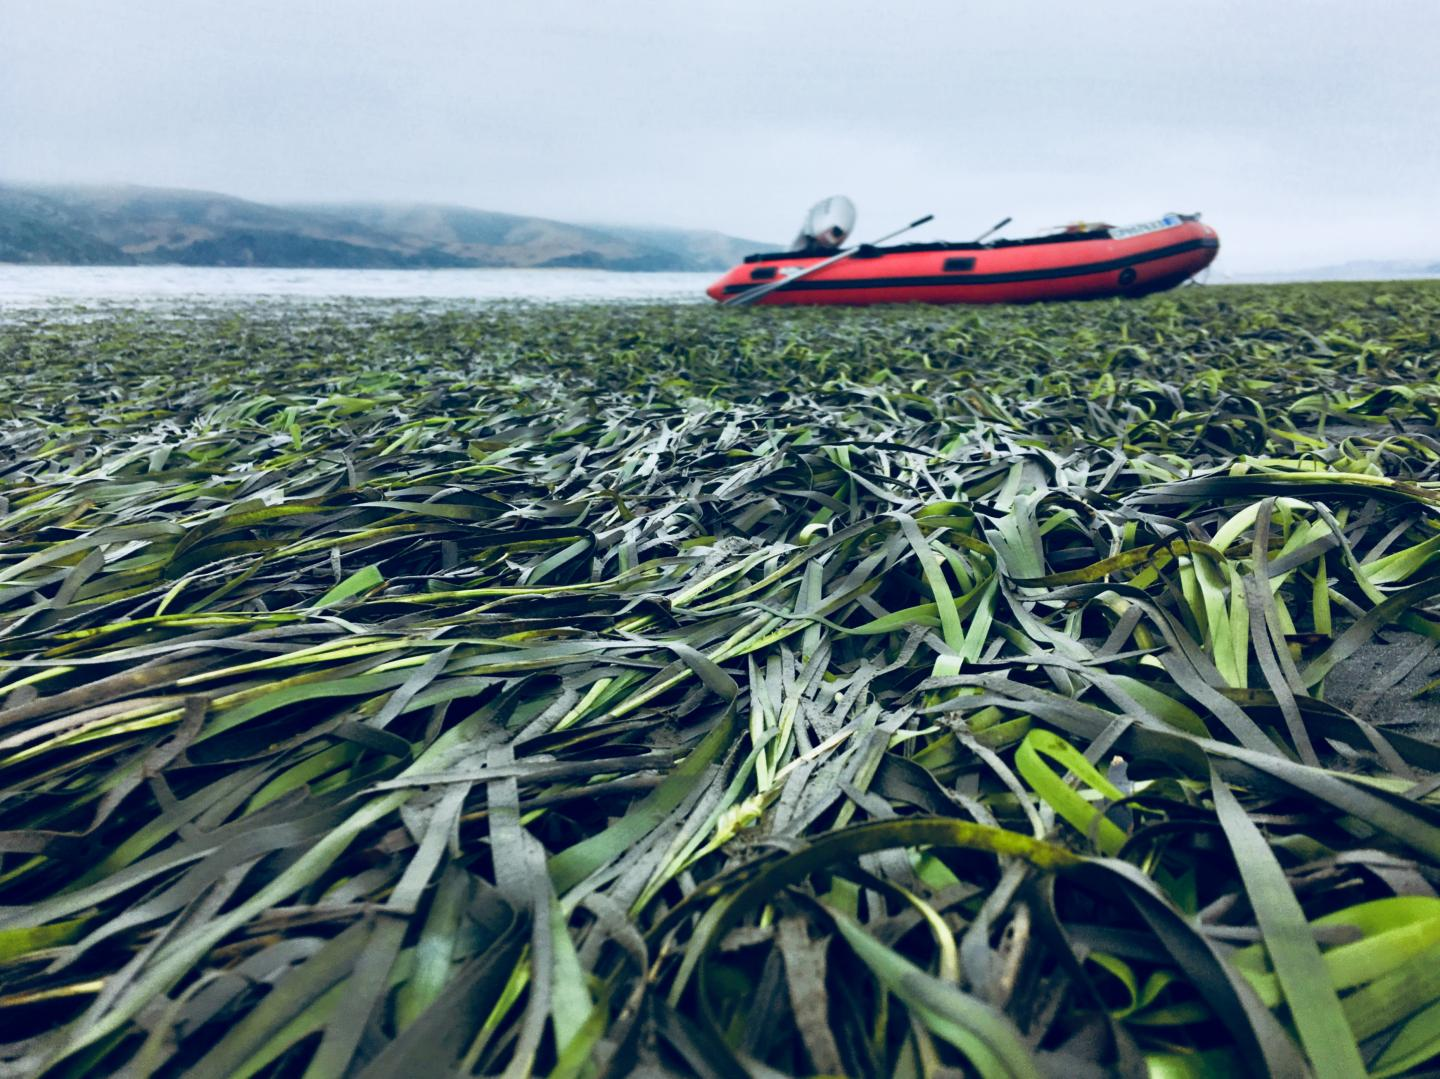 Seagrass with red boat